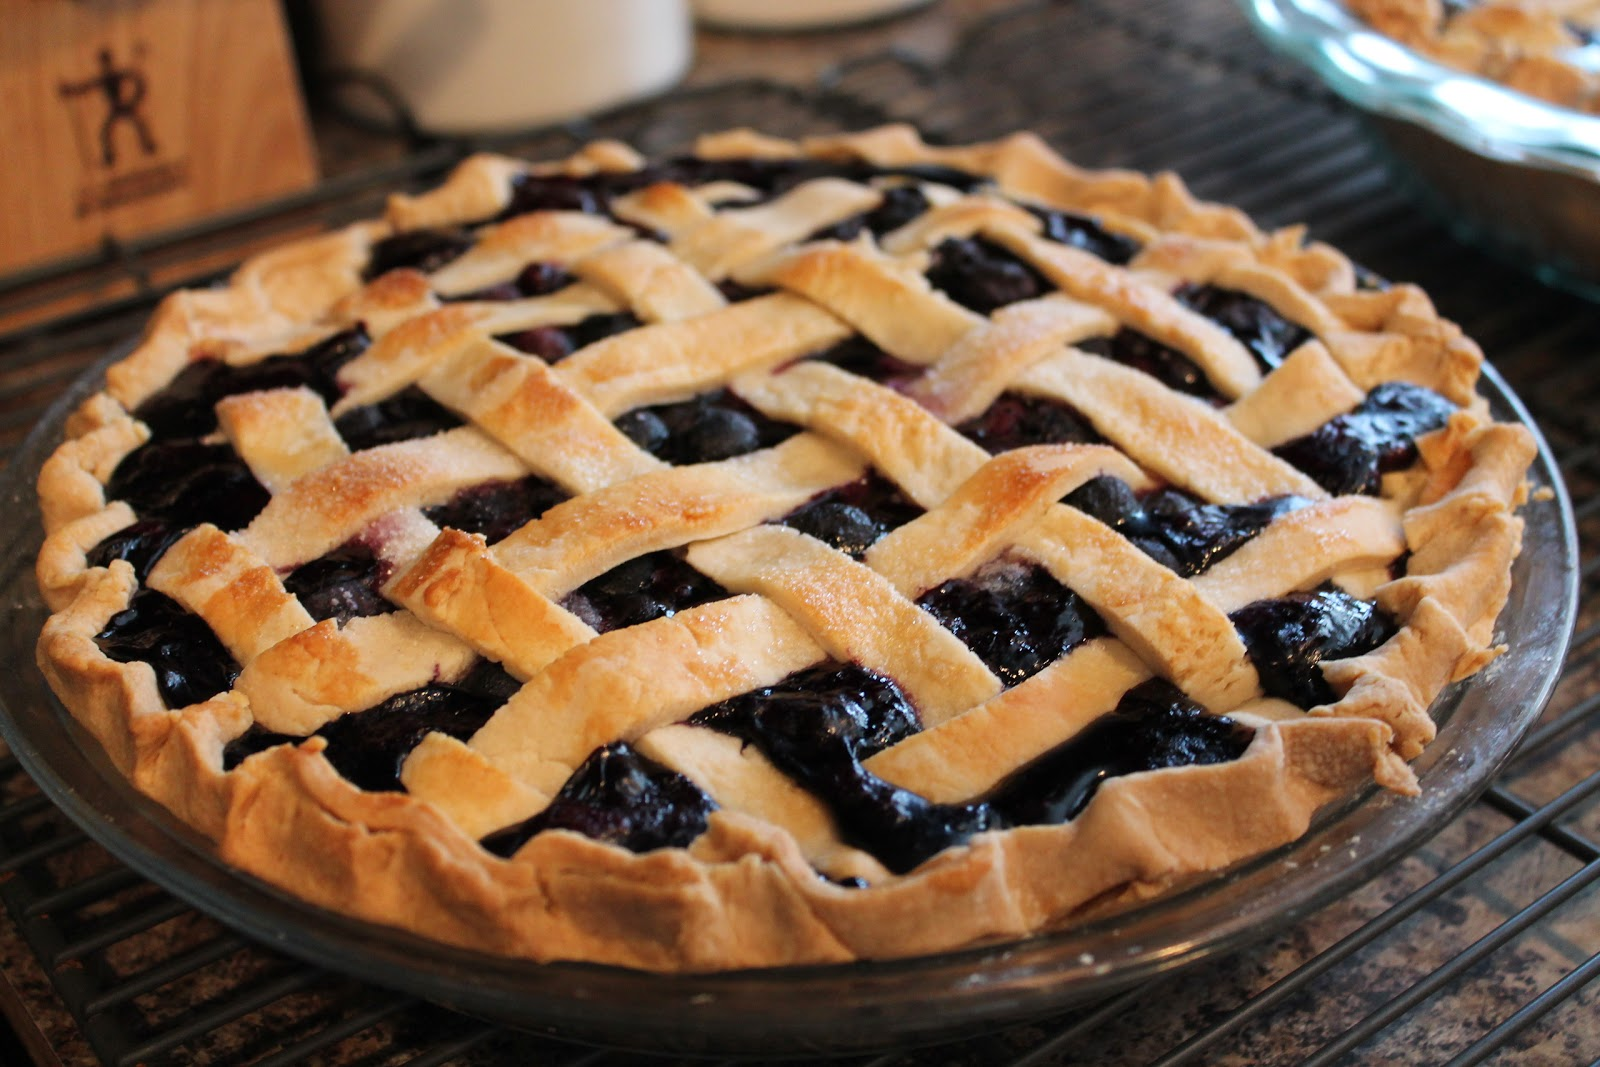 Jane's Girl Designs: Homemade Blueberry Pie (no...seriously)